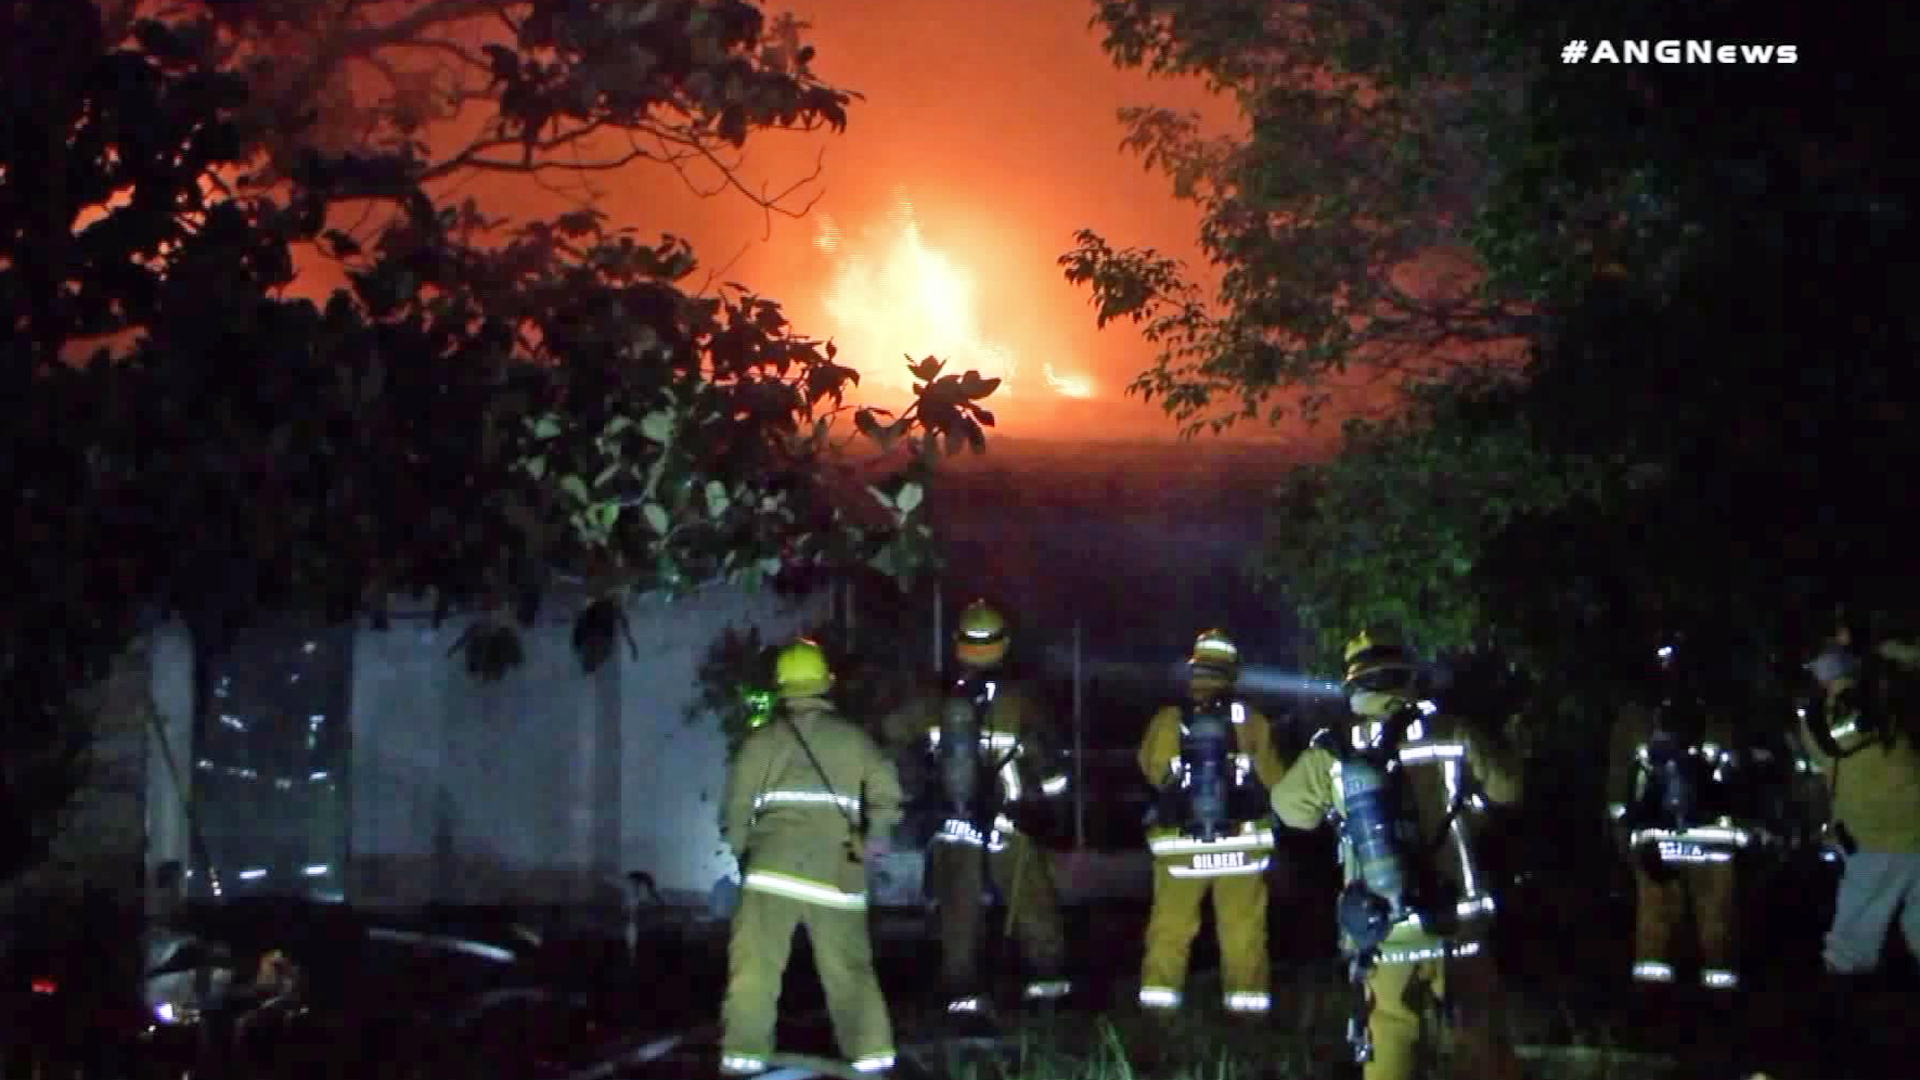 Firefighters battle a blaze in Brentwood on Sept. 14, 2018. (Credit: ANGNews)